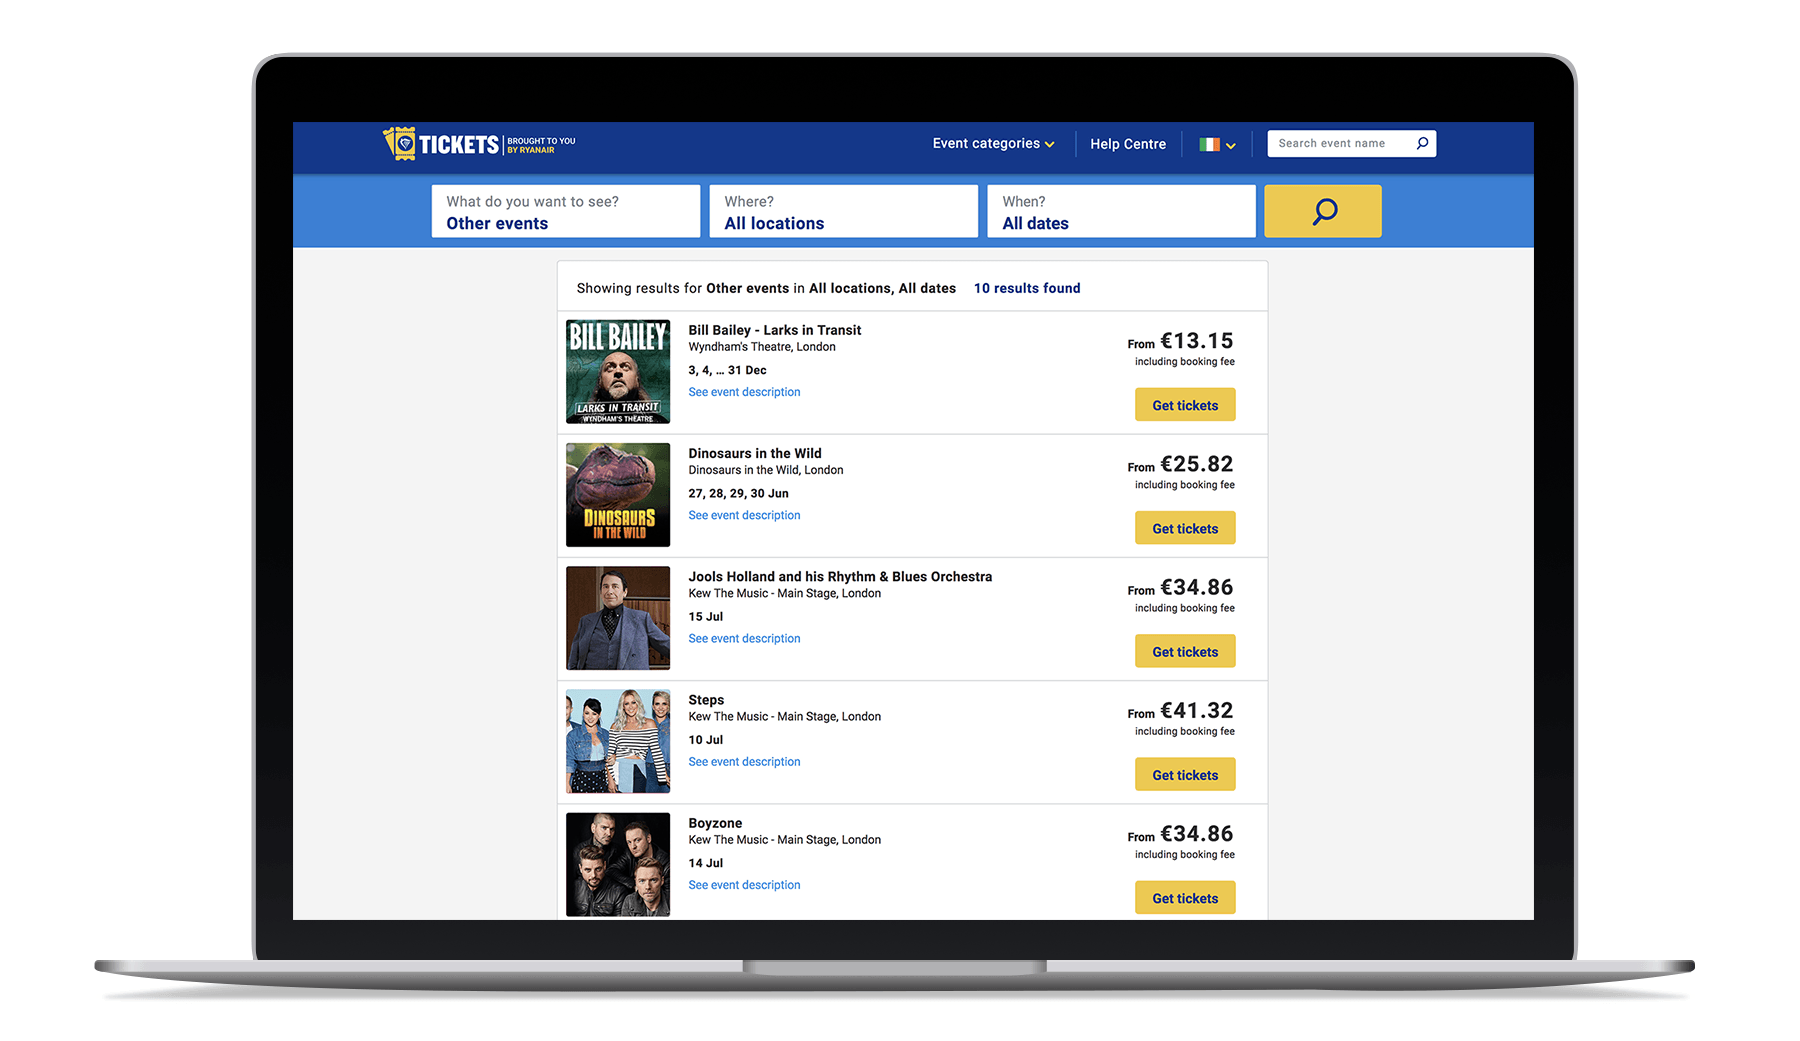 Laptop showing Ryanair Tickets' selection of live events in the UK.